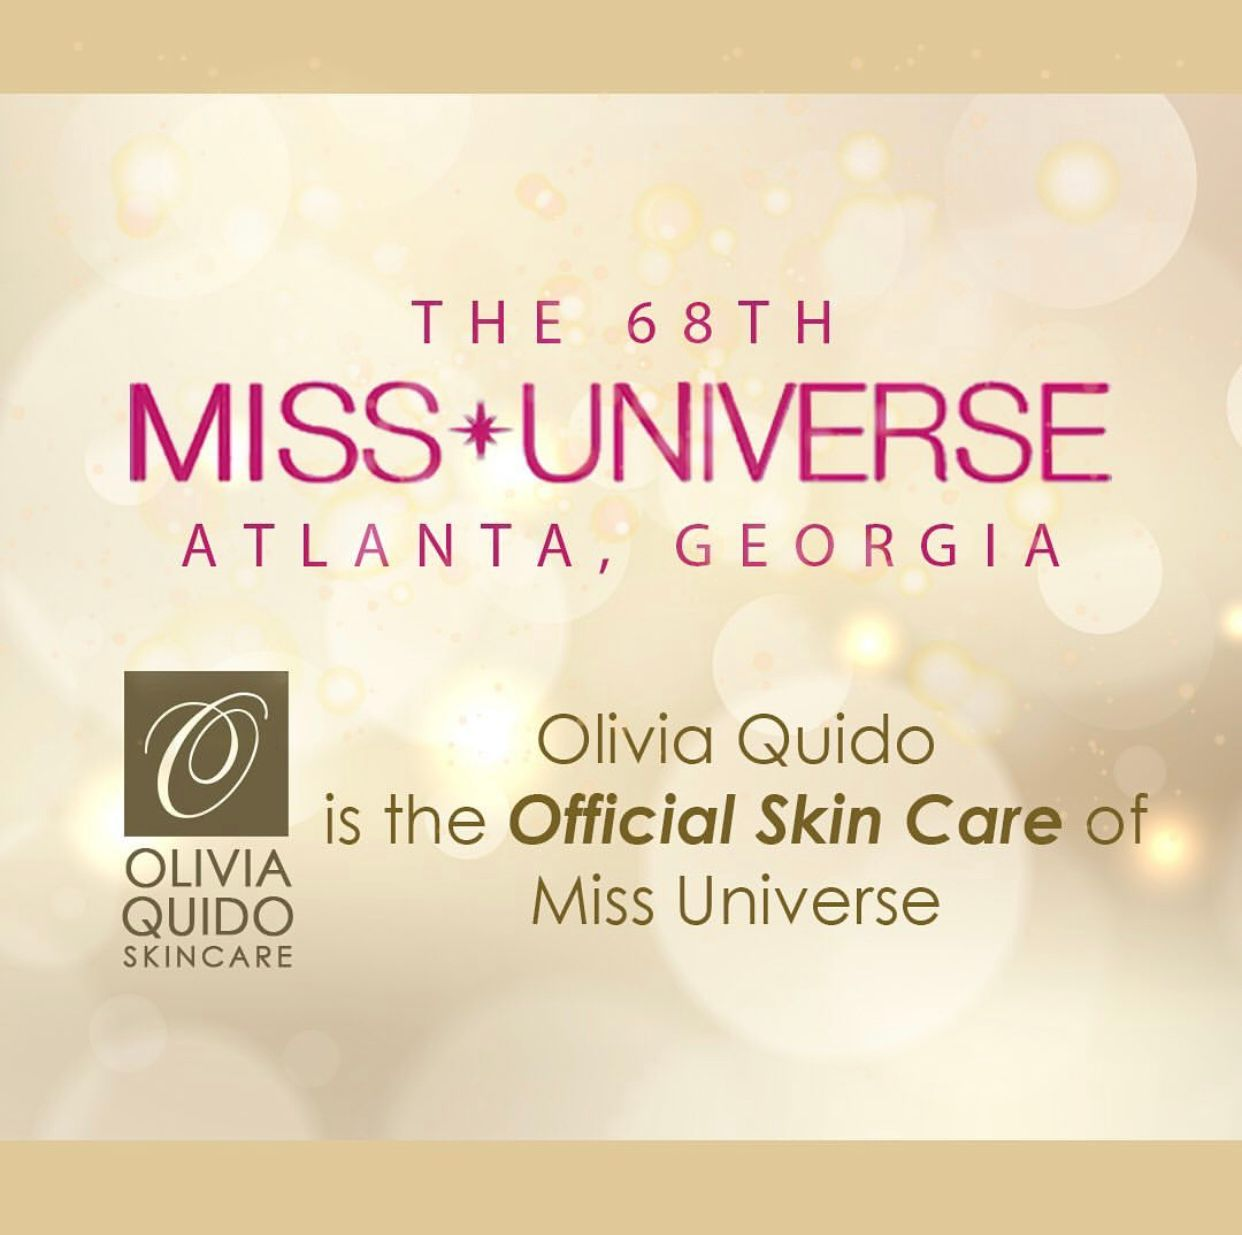 Olivia Quido Skin Care, The Official Skin Care of Miss Universe 2019